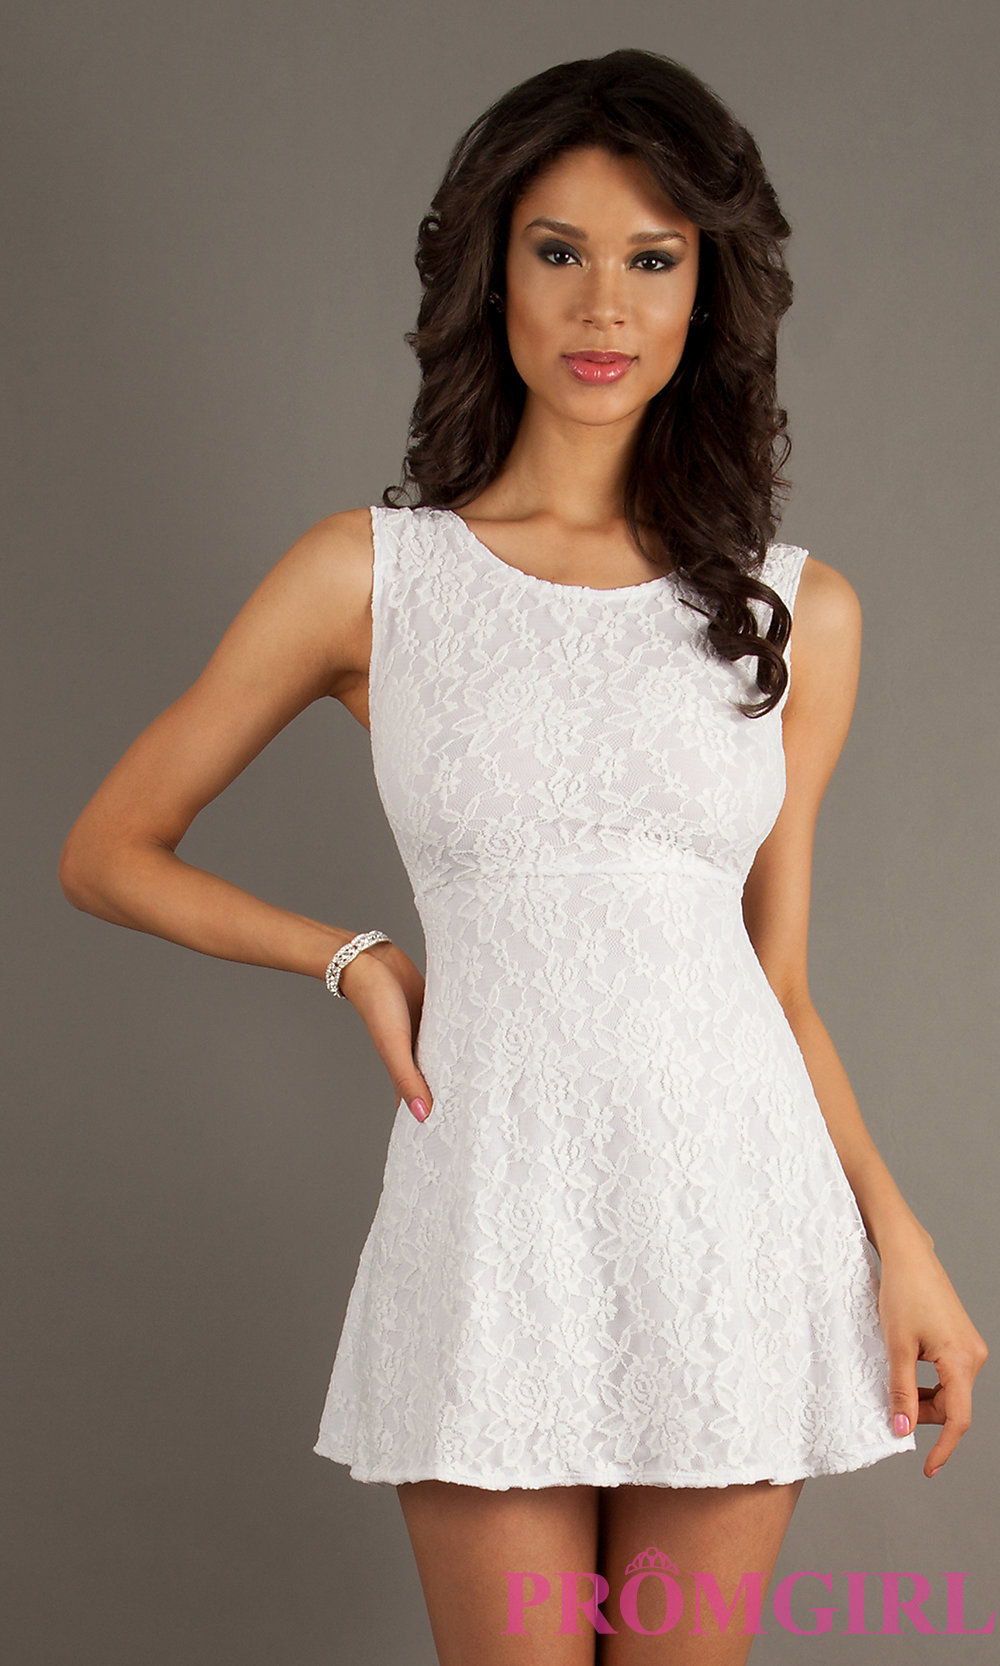 Where To Buy White Lace Dress : Help You Stand Out